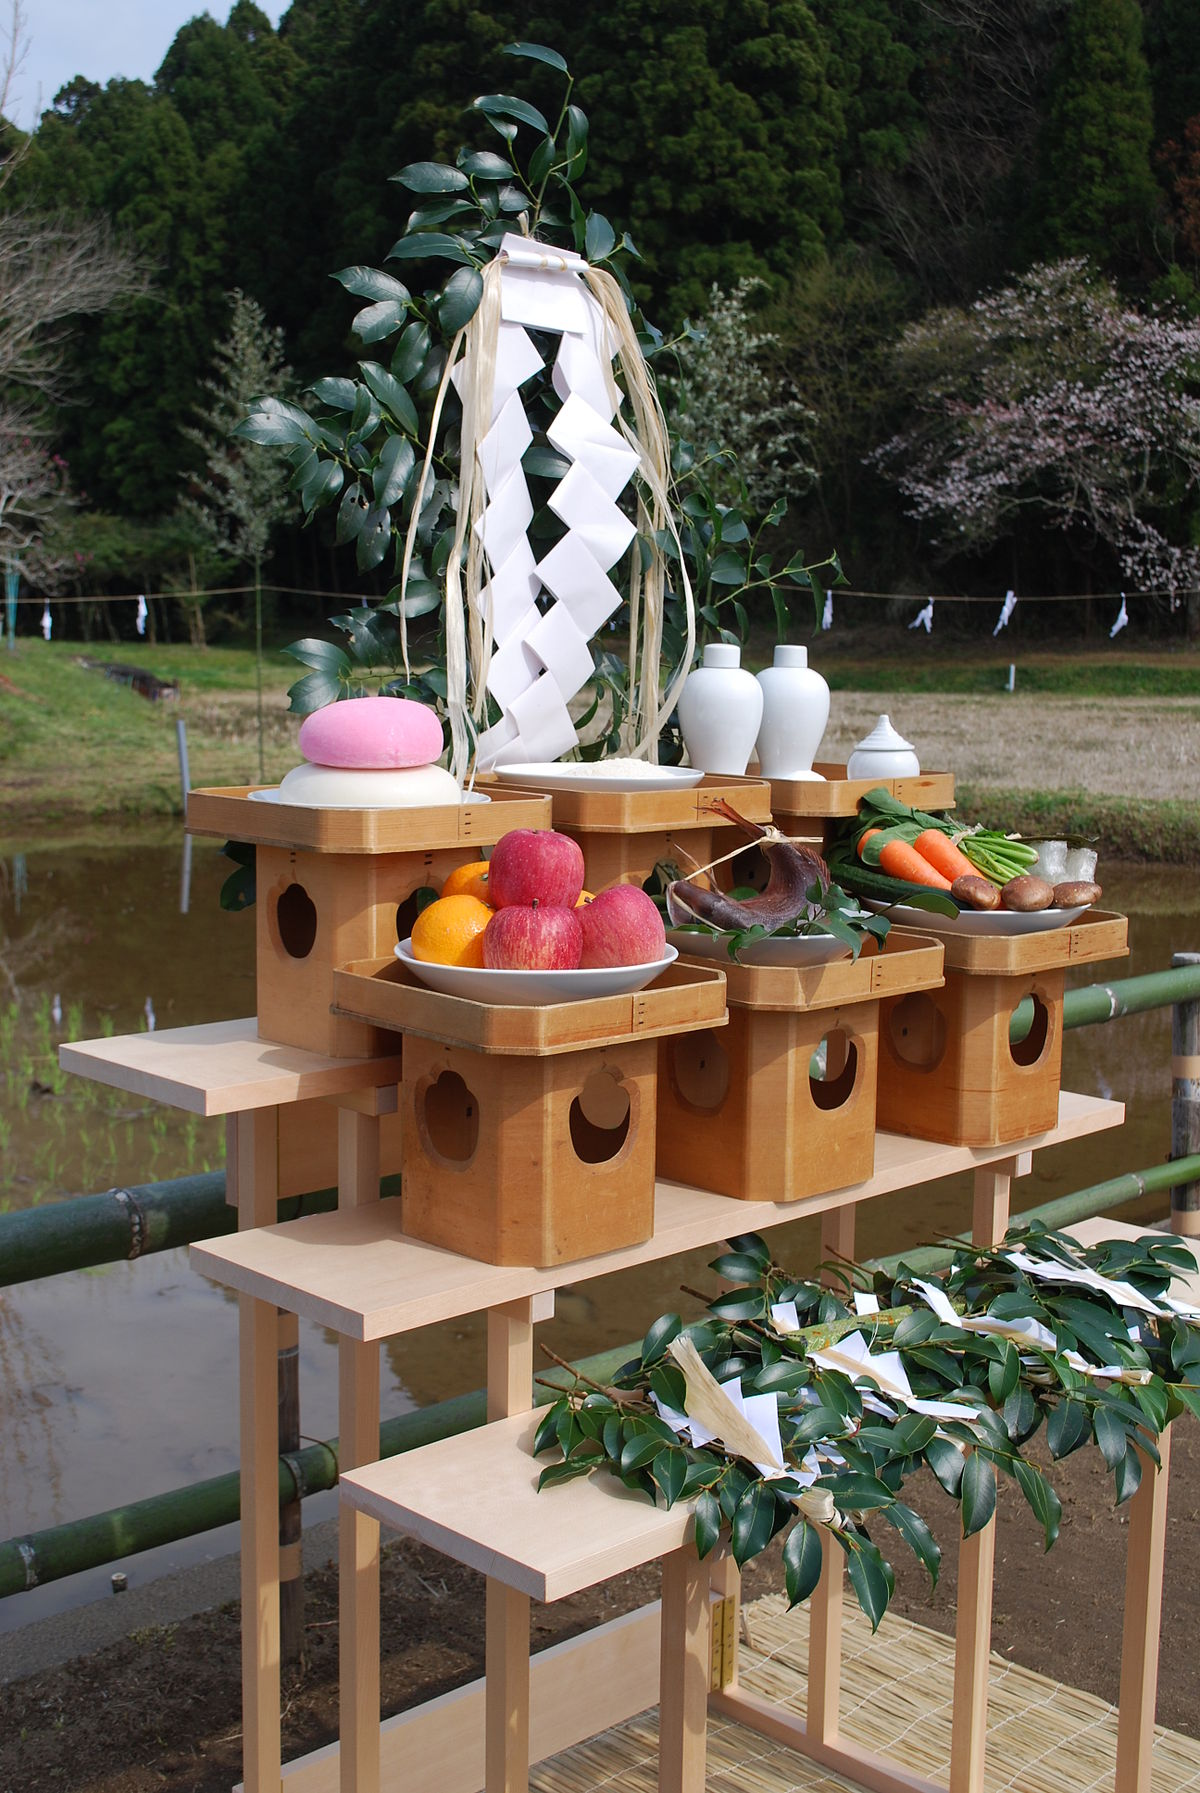 Votive offering of the Shinto,Katori-jingu,Katori-city,Japan.JPG